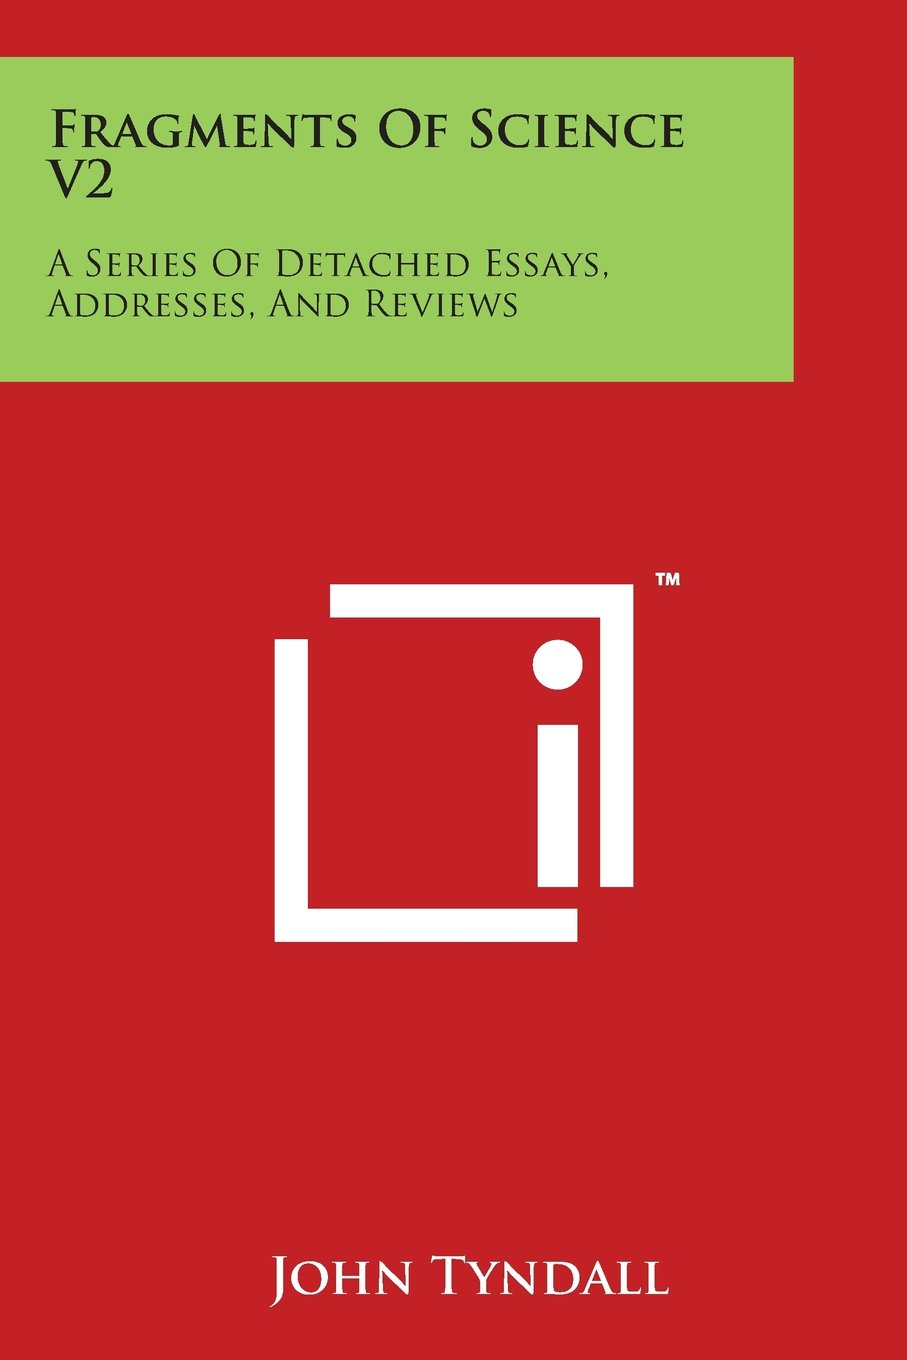 Fragments of Science V2: A Series of Detached Essays, Addresses, and Reviews PDF